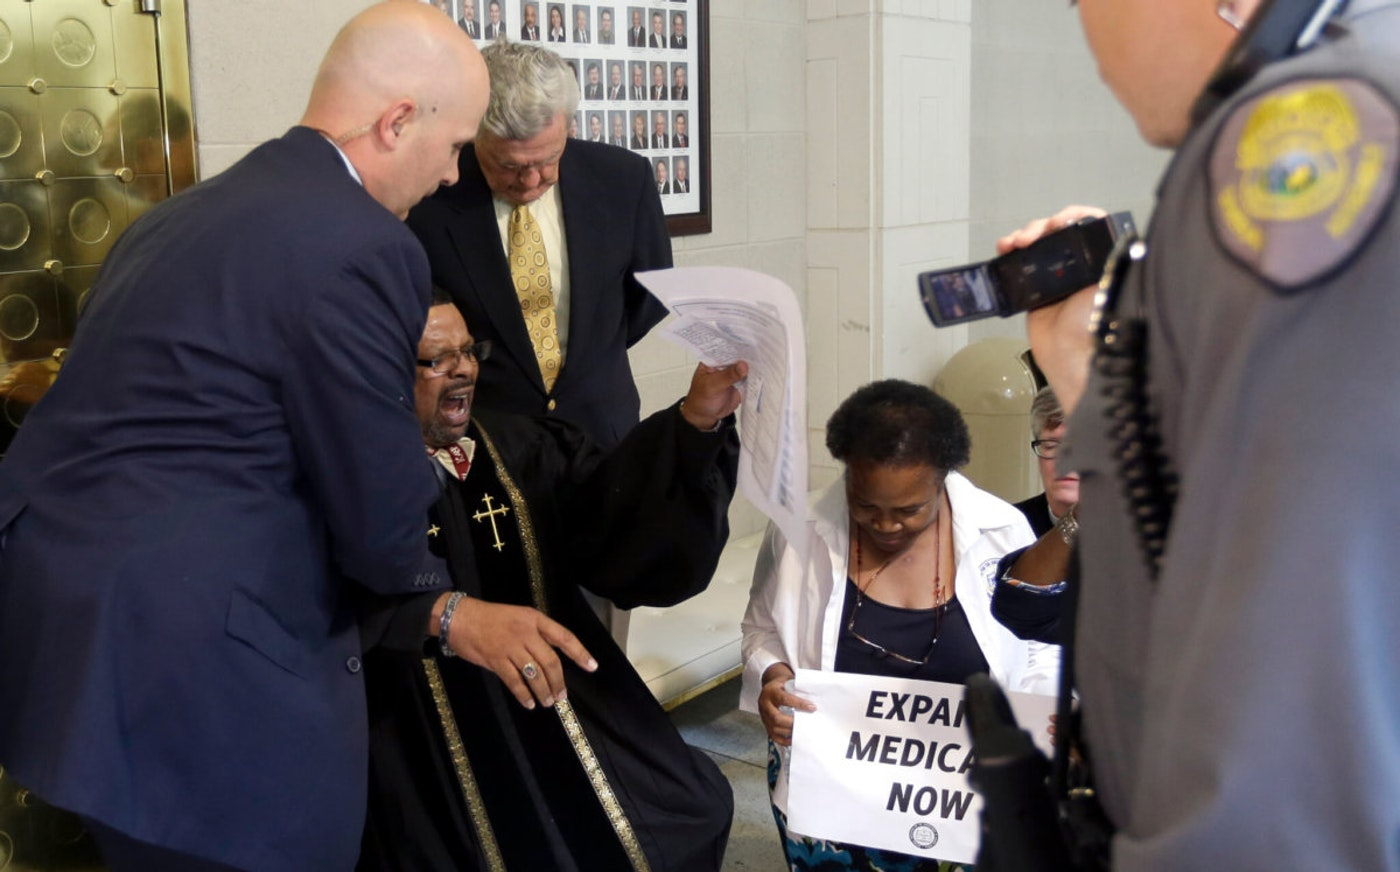 Reverend Gregory Hardy is arrested in April 2015 as he and other clergy members demonstrate for Medicaid expansion outside the Senate chamber at the North Carolina Legislature in Raleigh, N.C. (AP Photo/Gerry Broome)